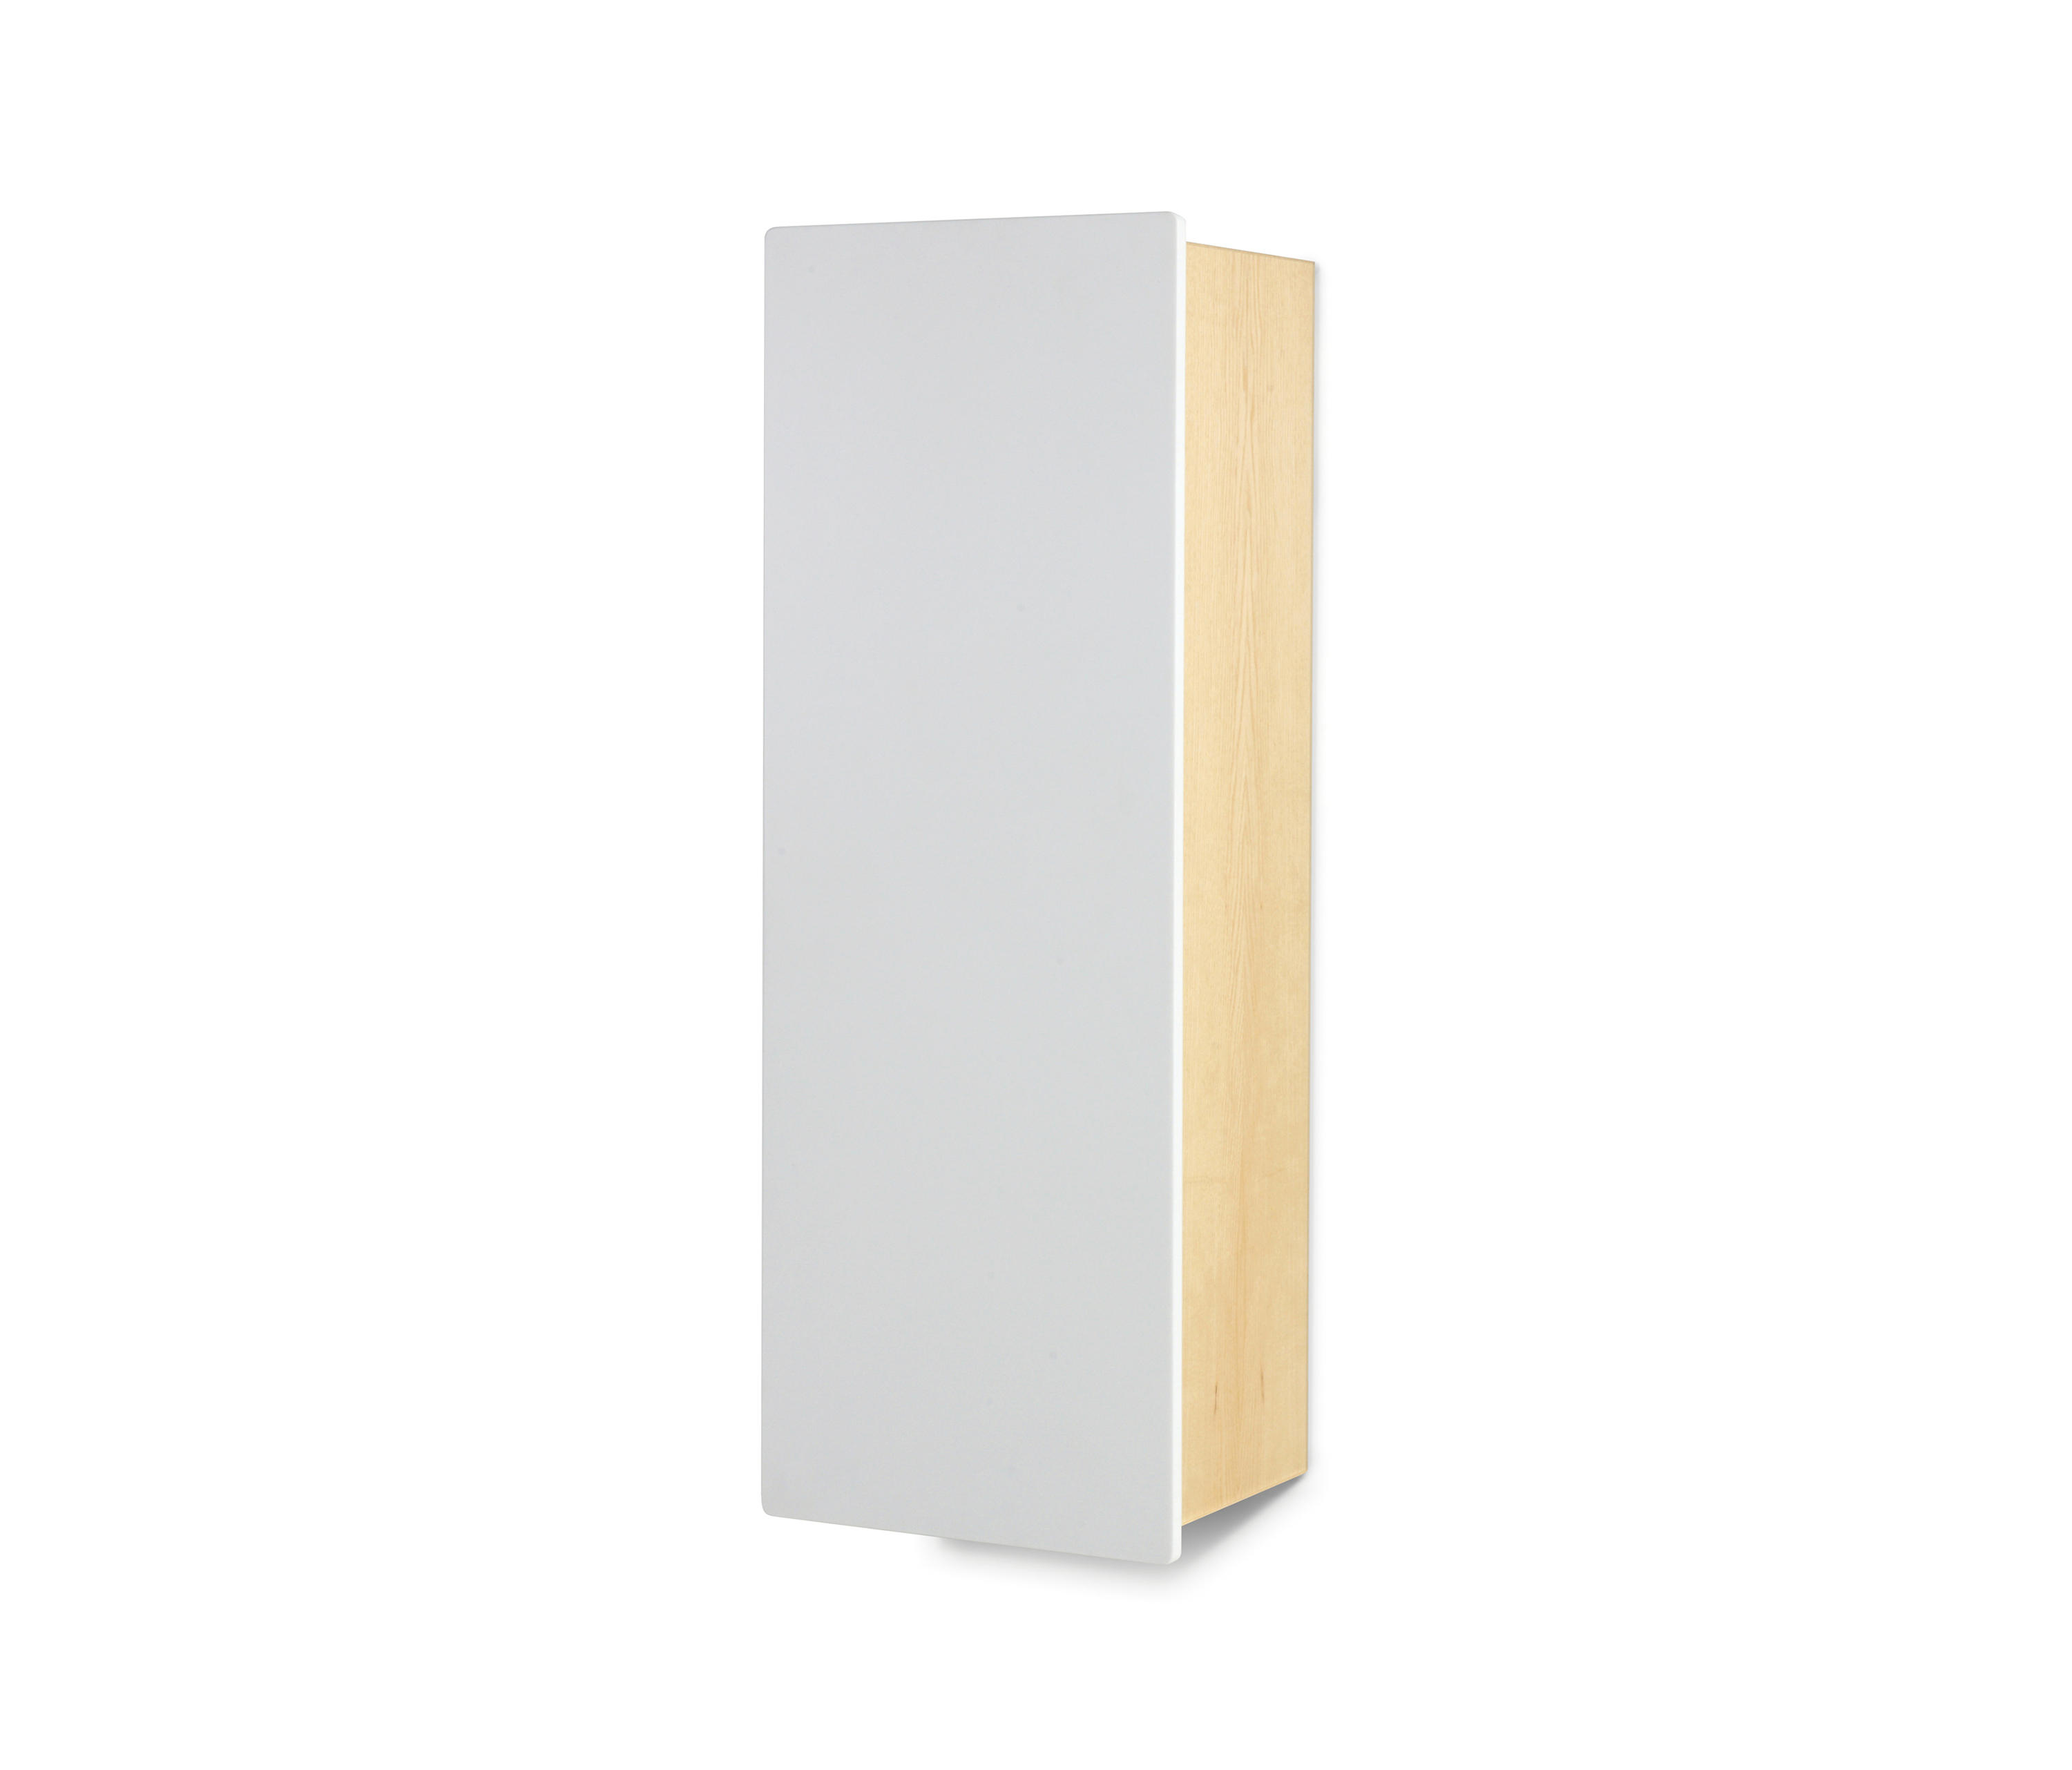 PRIVATE SPACE BATHROOM CABINET - Wall cabinets from ellenberger ...